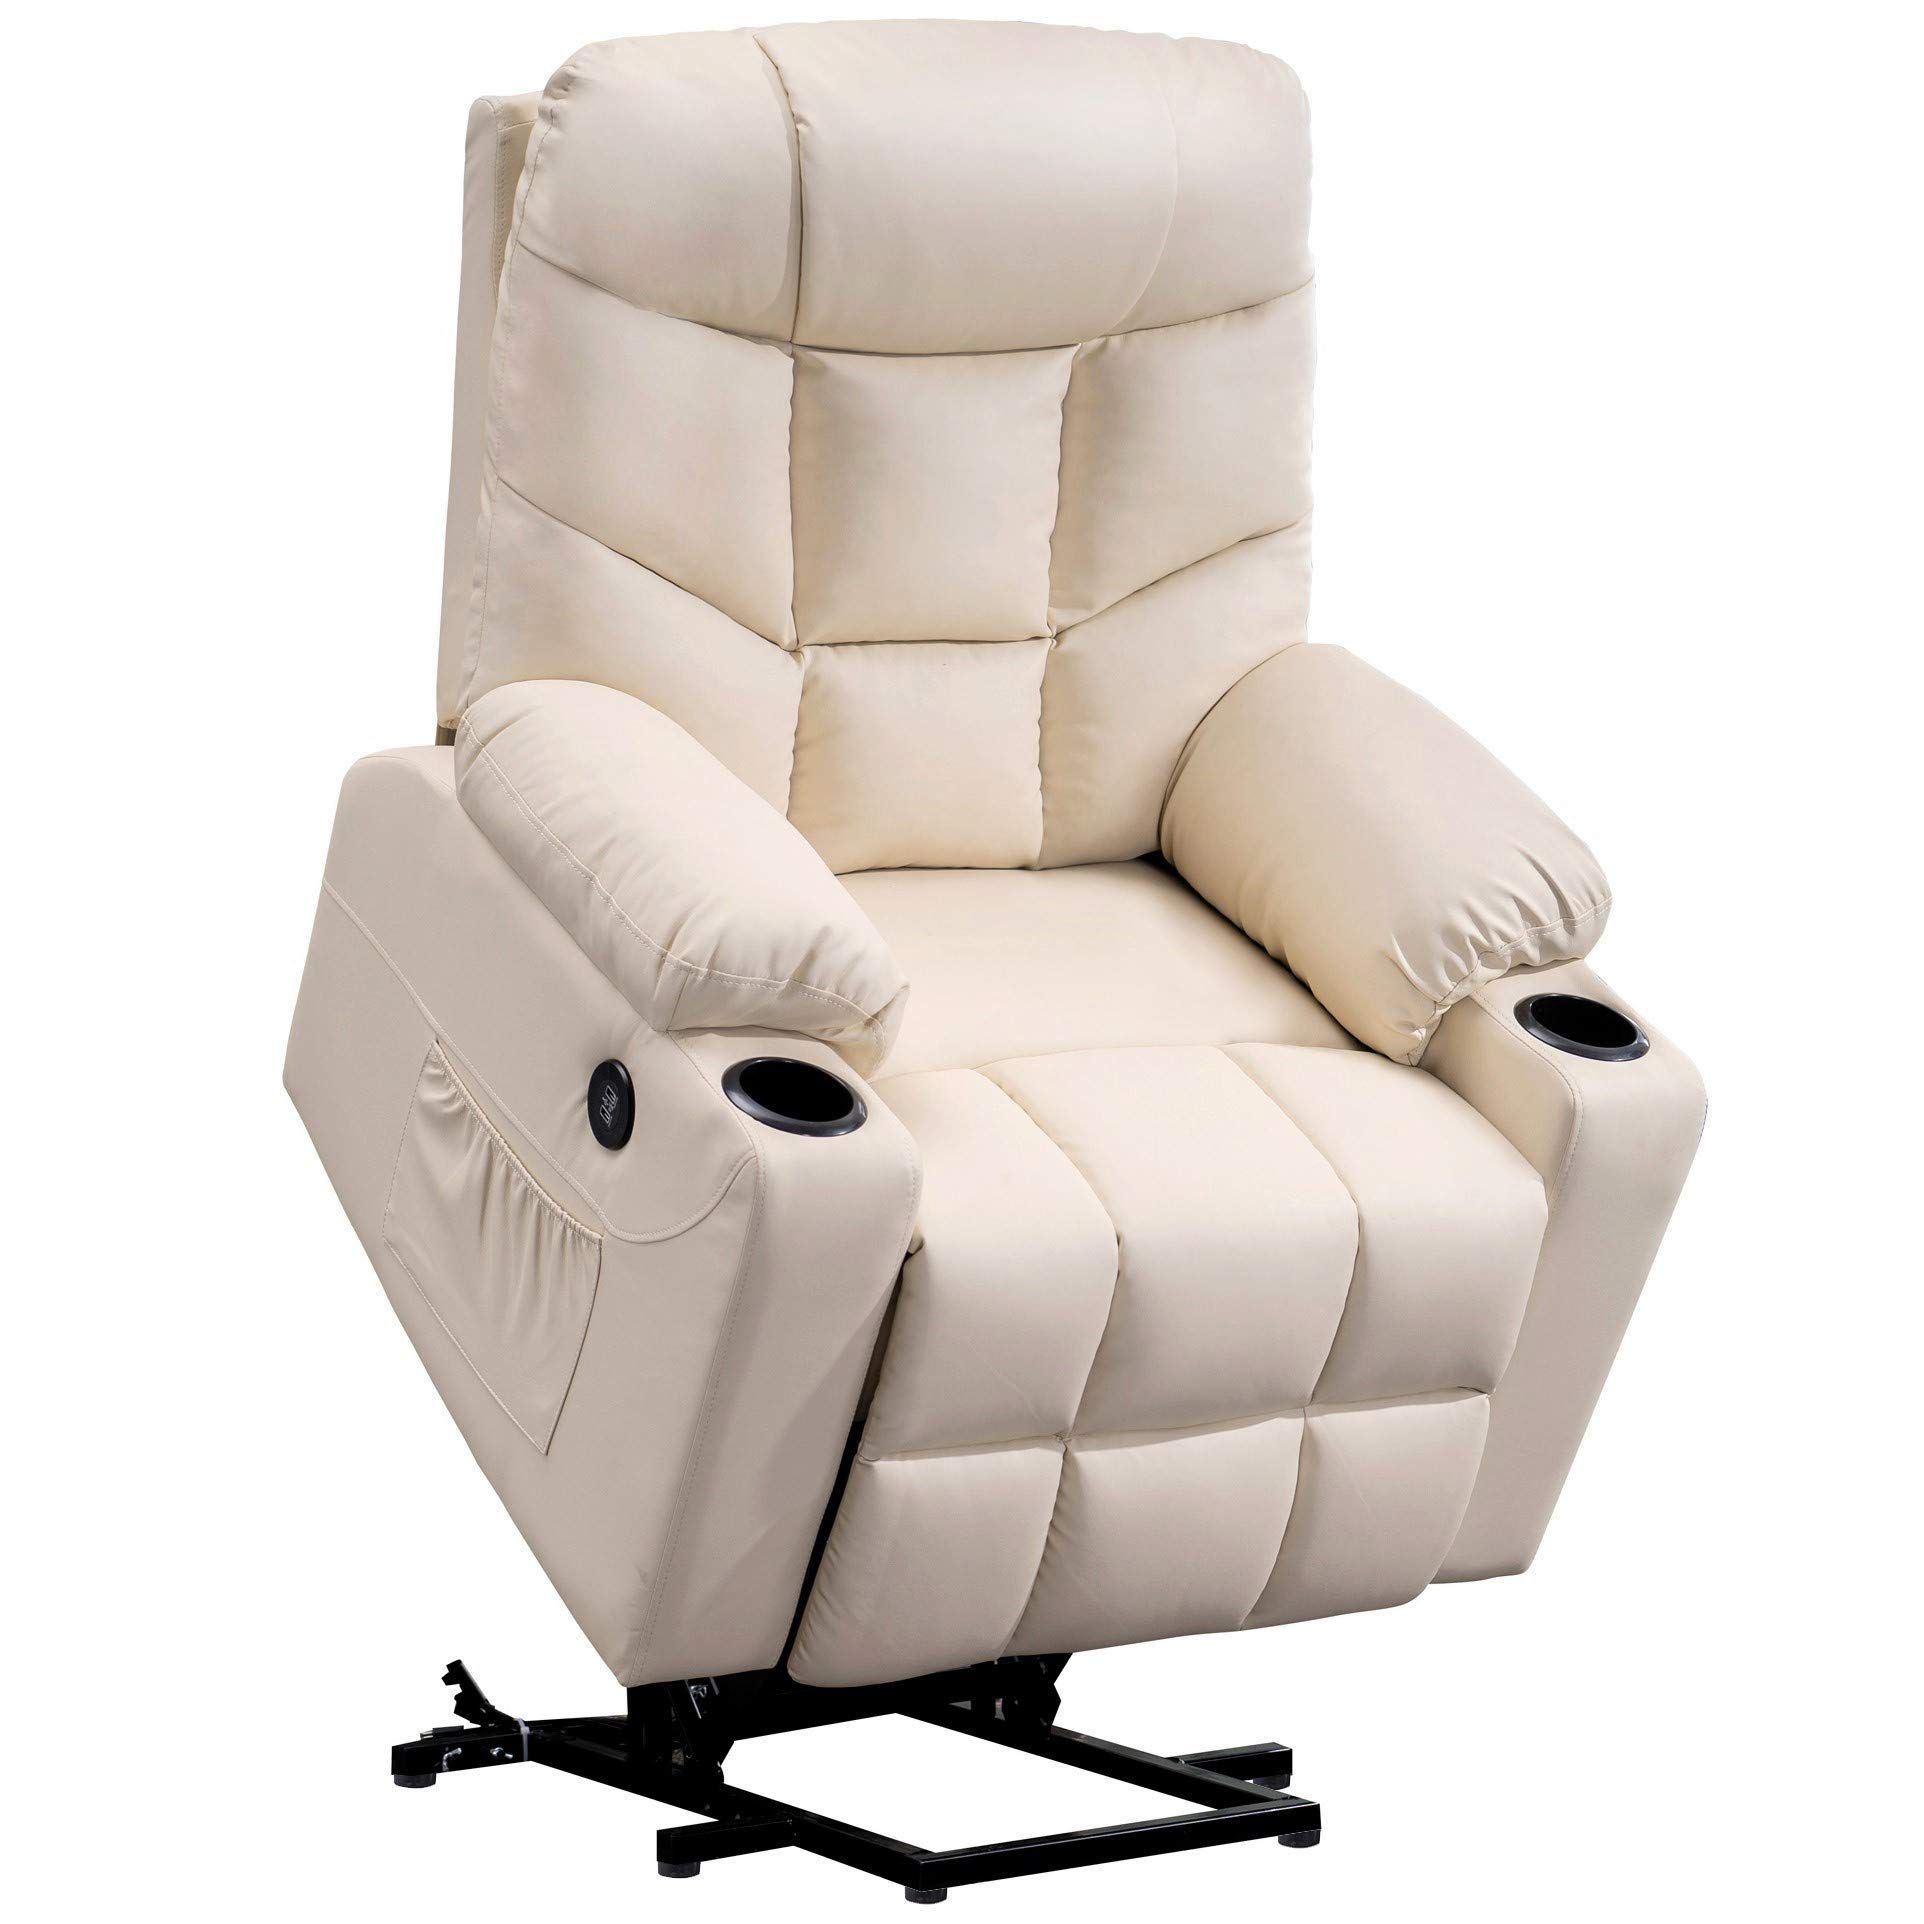 Pin By 自辉 向 On 沙发 In 2020 Recliner Chair White Leather Chair Chair